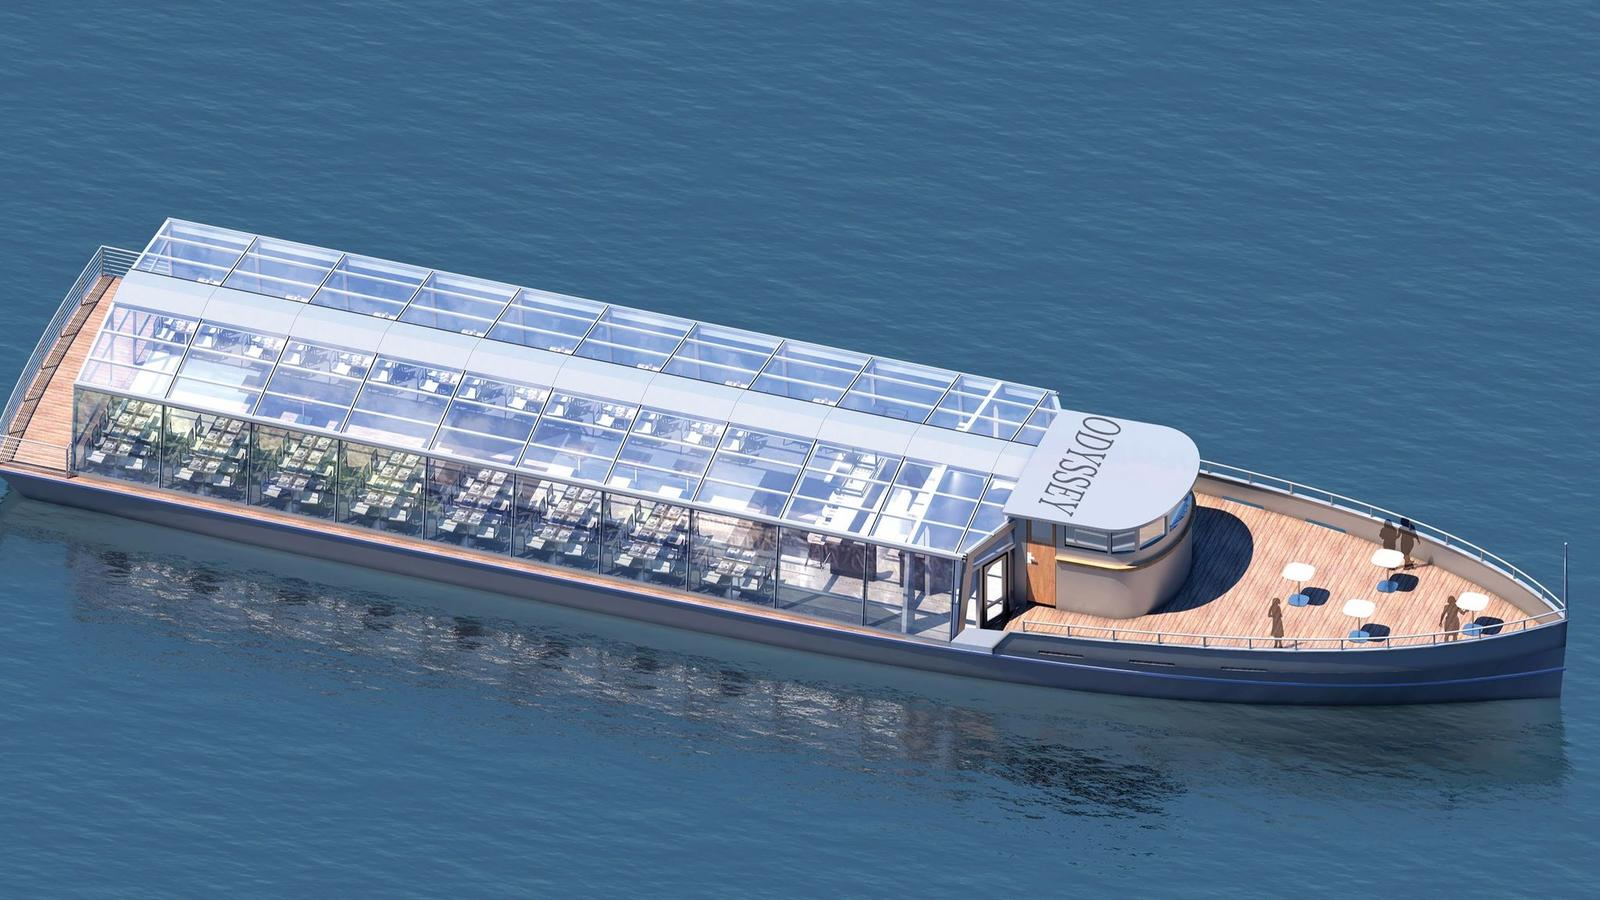 New Glass Topped Boat Will Offer Dinner Cruises On The